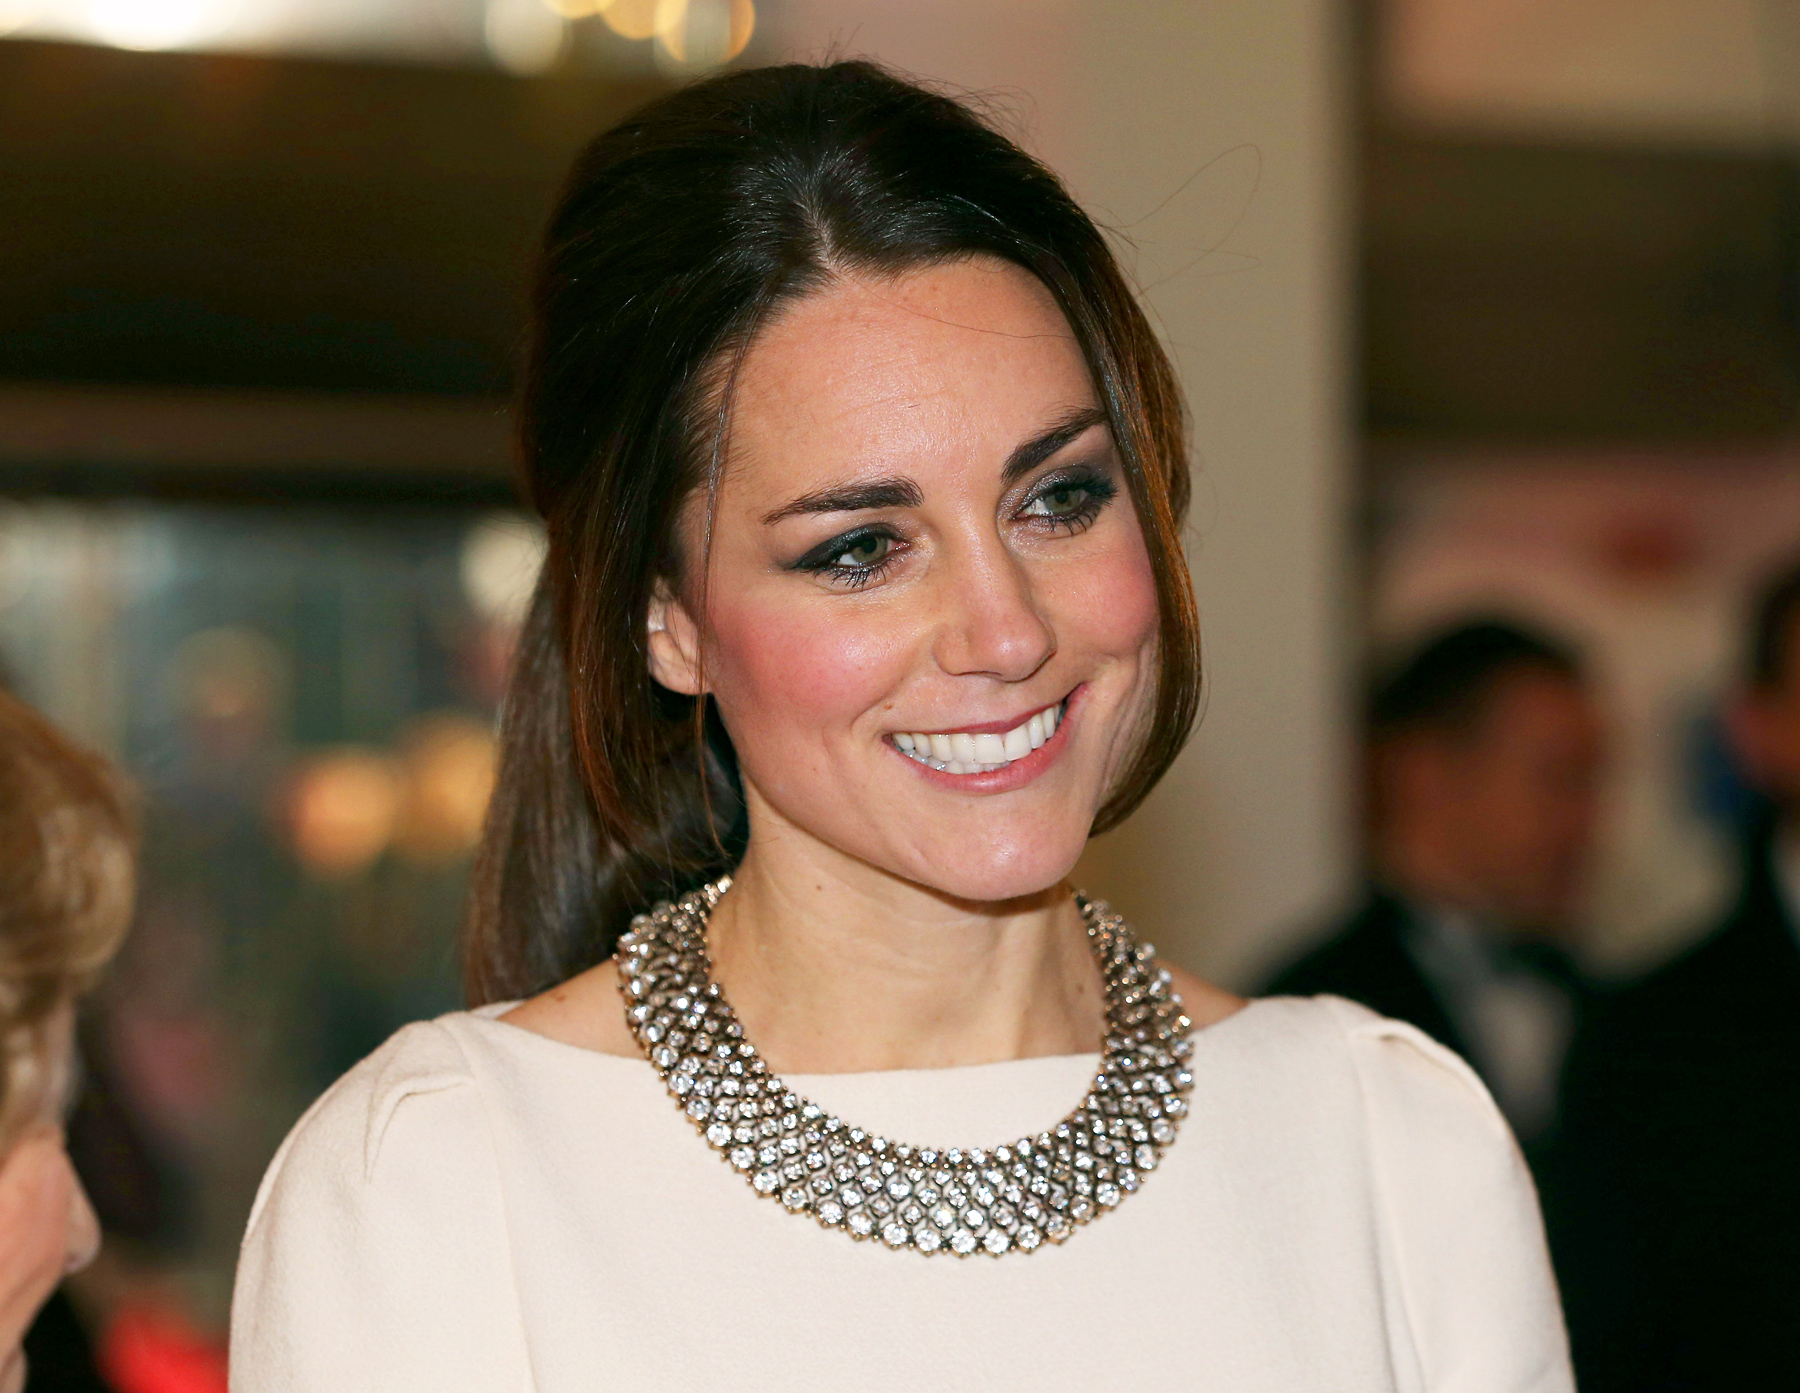 Kate Middleton Princess 339.31 Kb